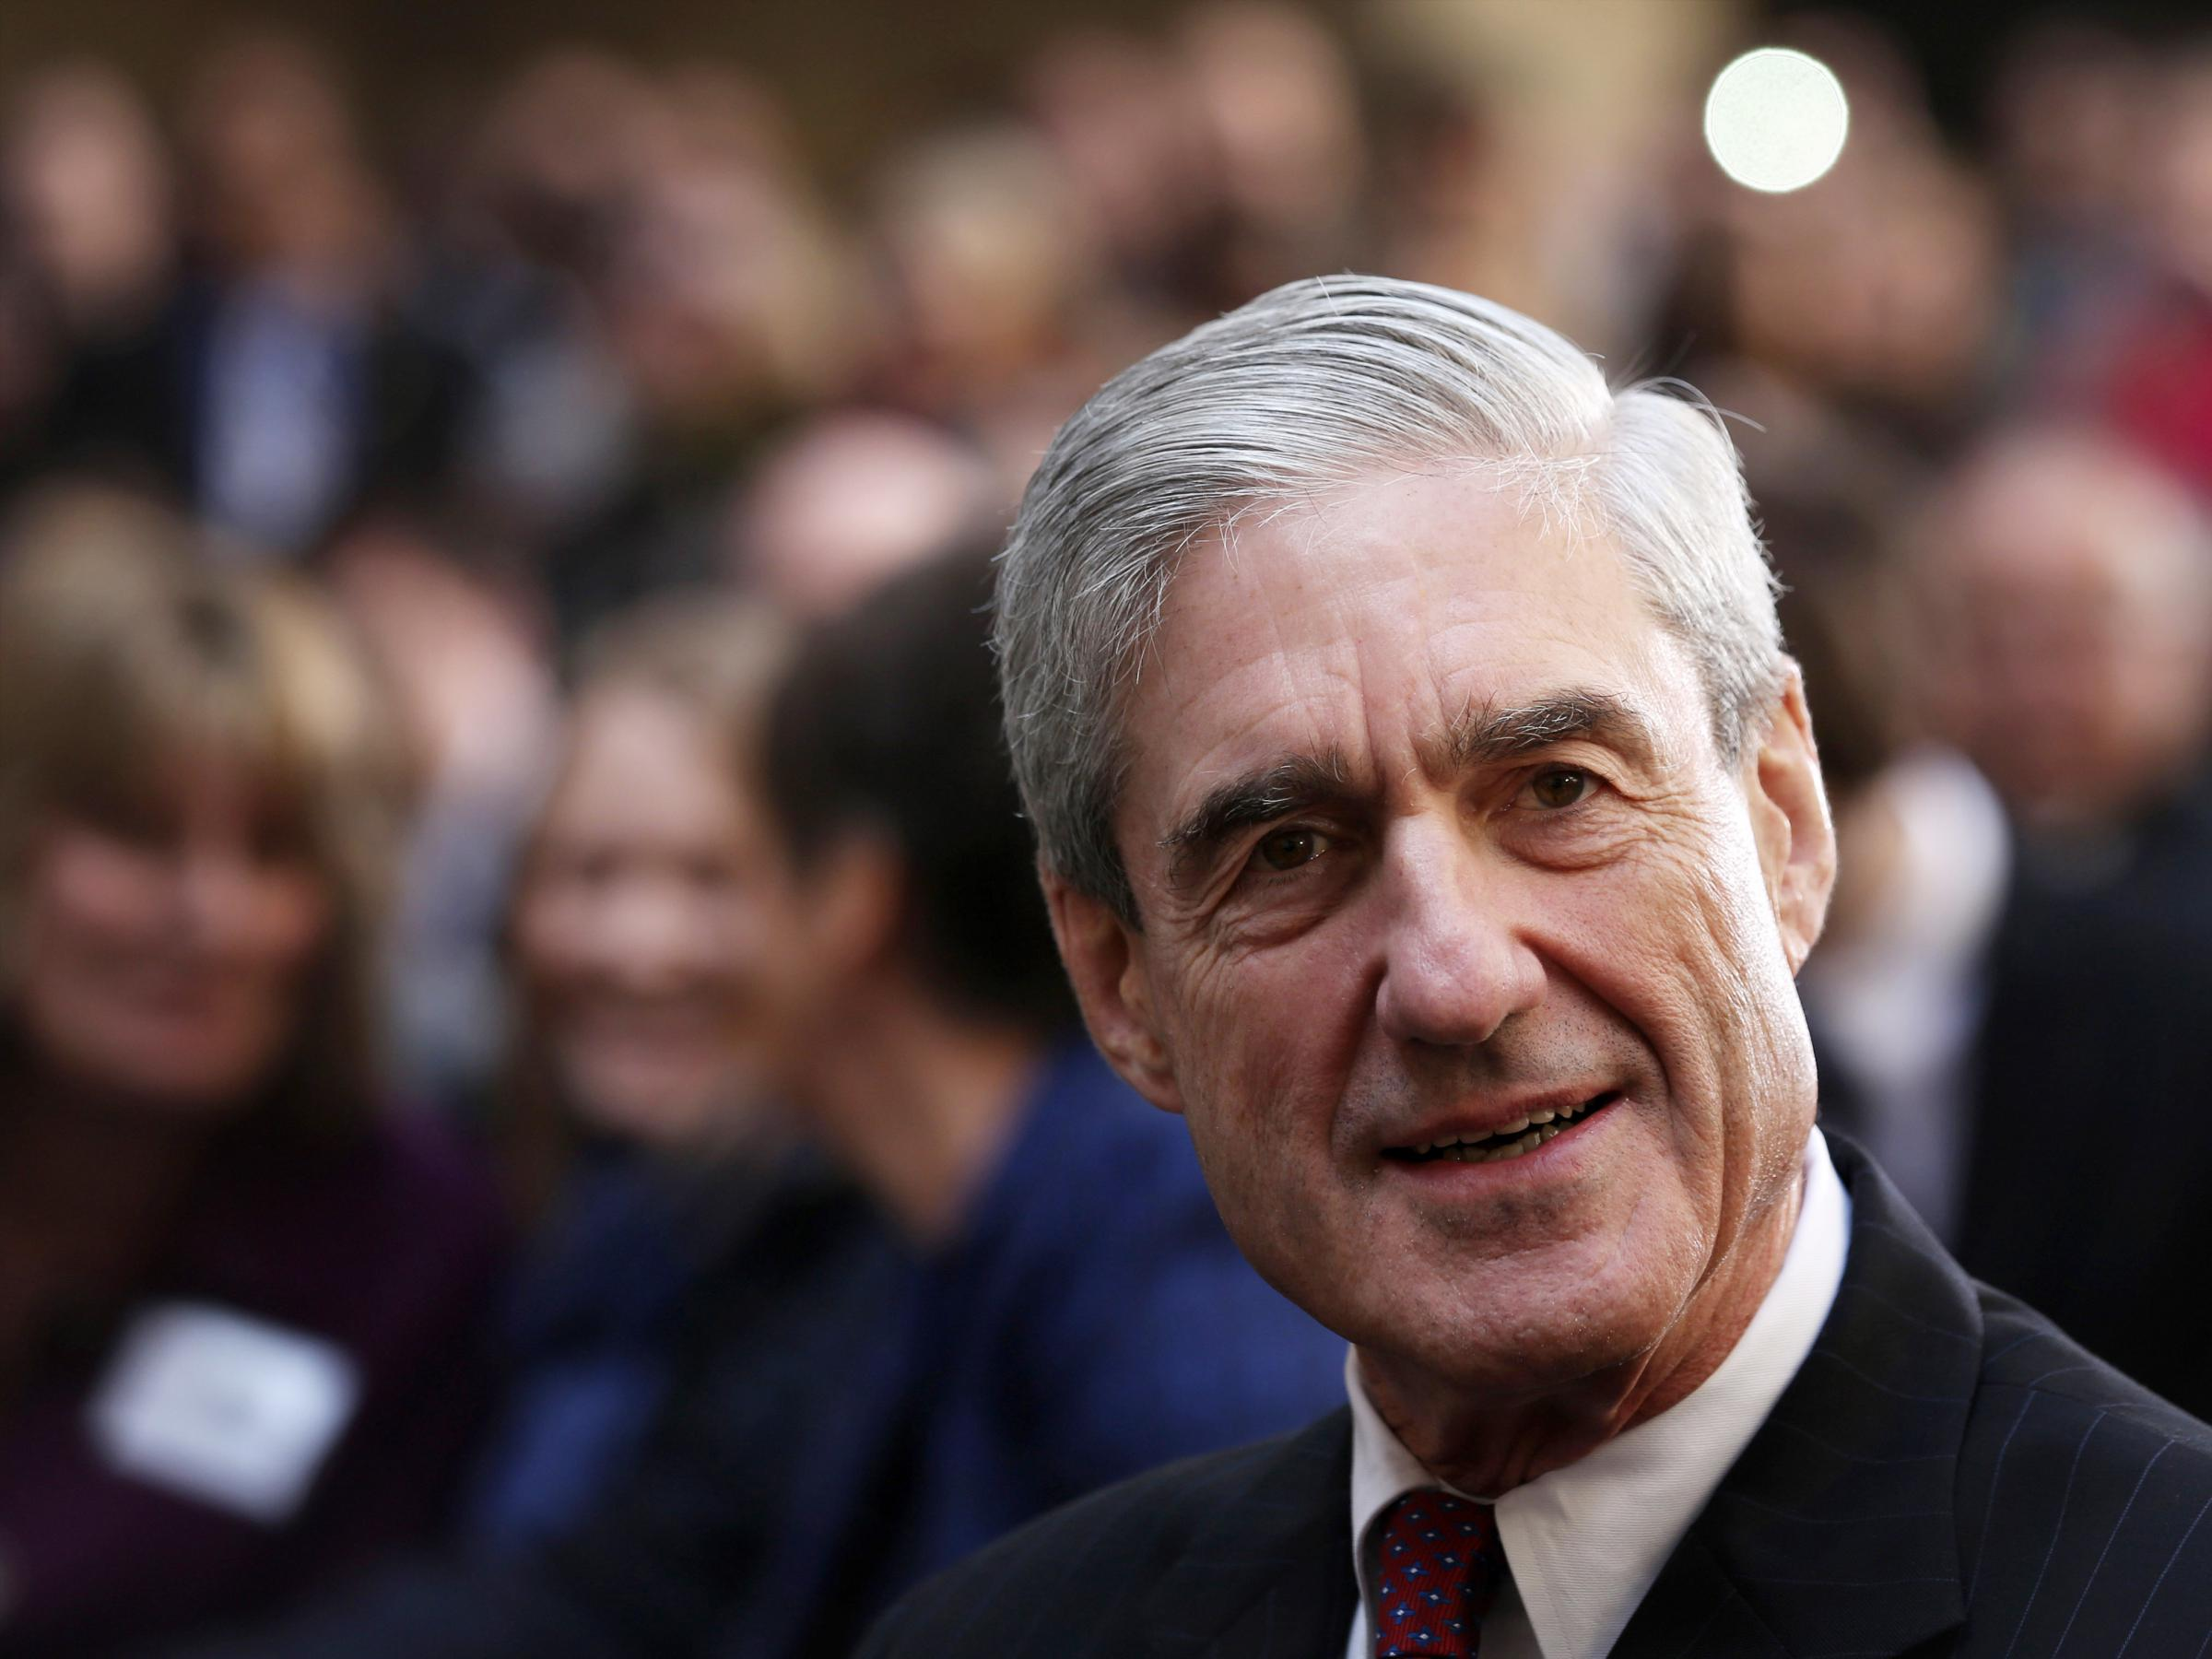 Newt Gingrich says Mueller's Russian Federation investigation is a